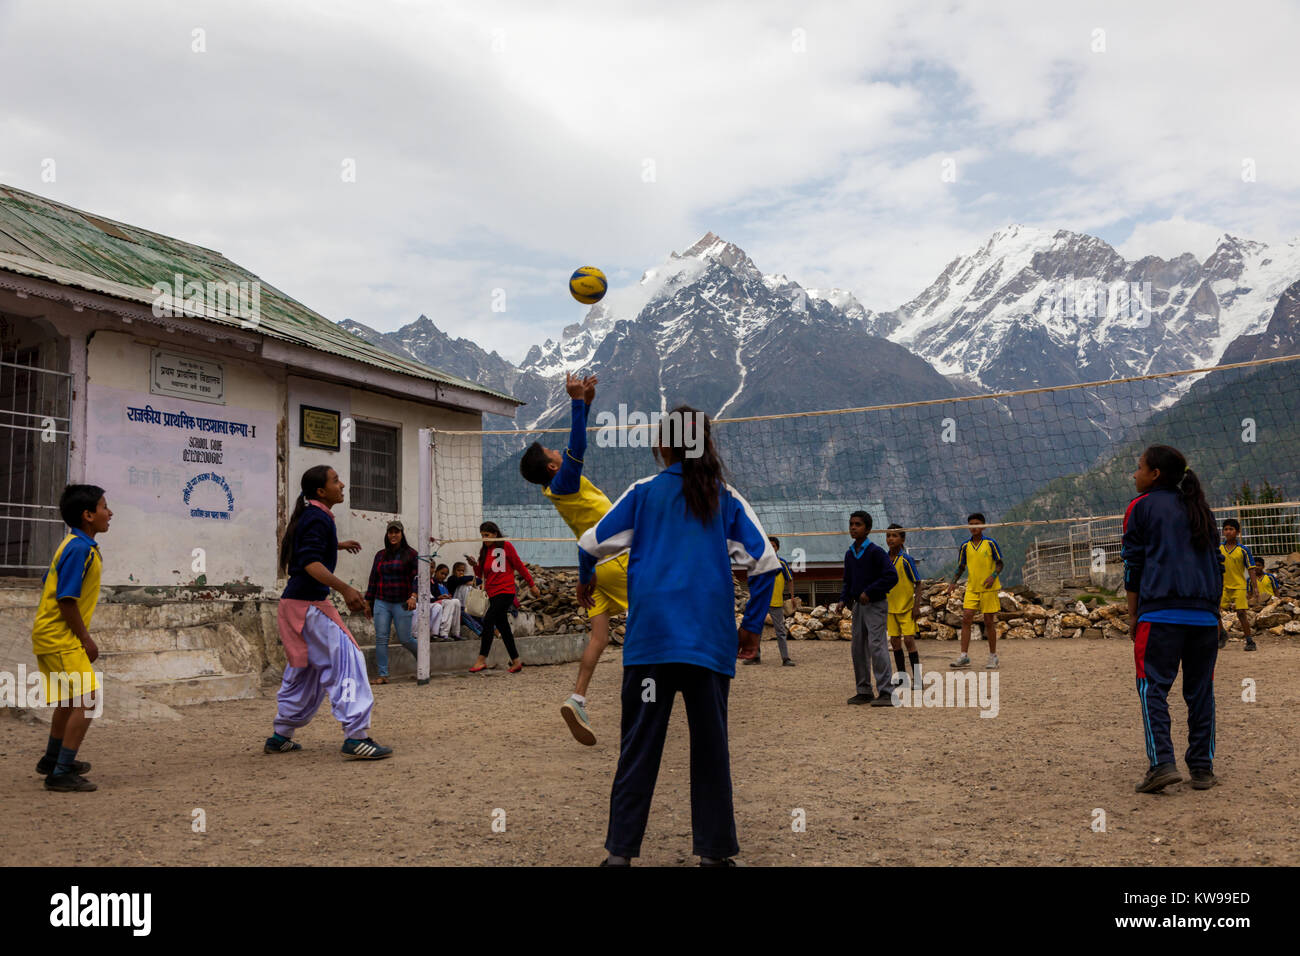 School children playing volleyball in school premise at Kalpa, Himachal Pradesh against the snow capped himalayan - Stock Image